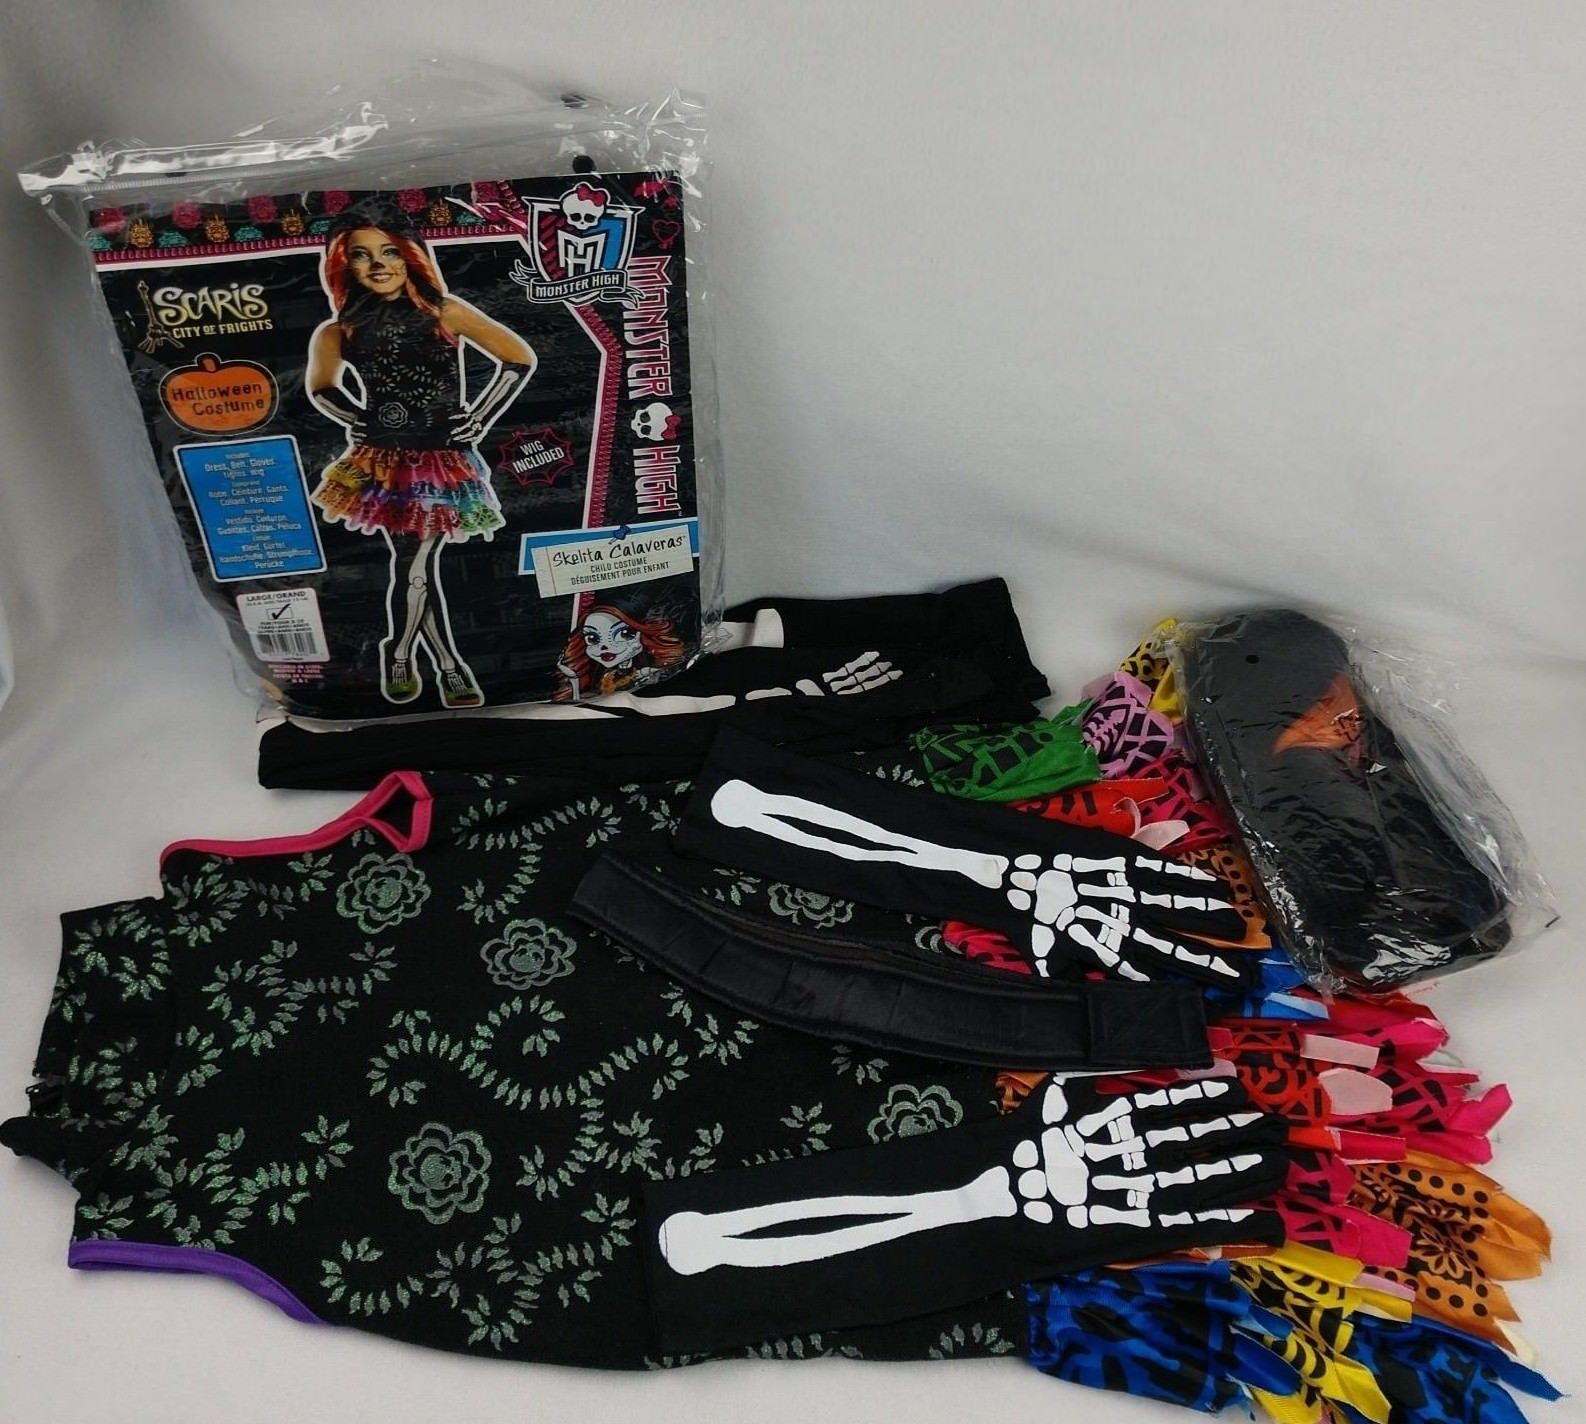 ... Rubies Monster High Skelita Calaveras Halloween Costume Dress Girl Medium 8-10 ... & Rubies Monster High Skelita Calaveras and 40 similar items